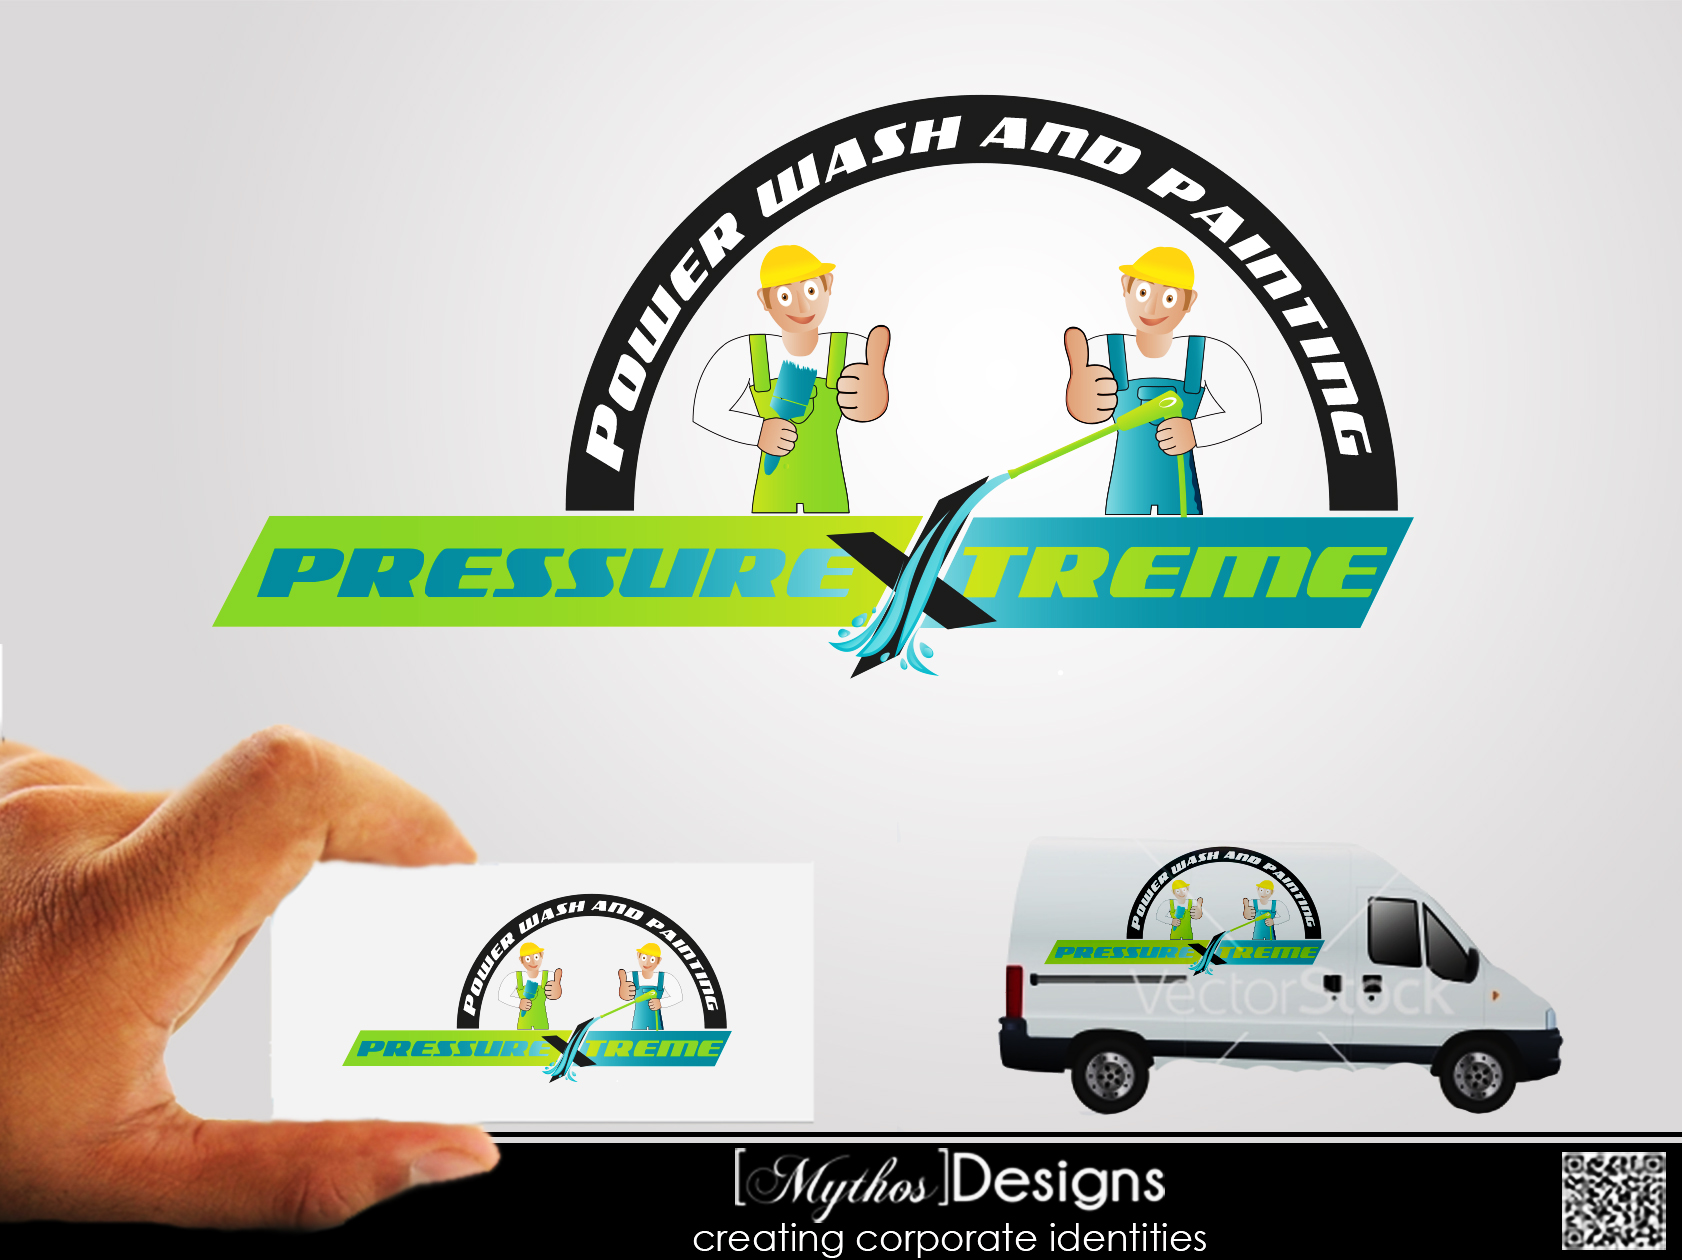 Logo Design by Mythos Designs - Entry No. 85 in the Logo Design Contest New Logo Design for PRESSUREXTREME.